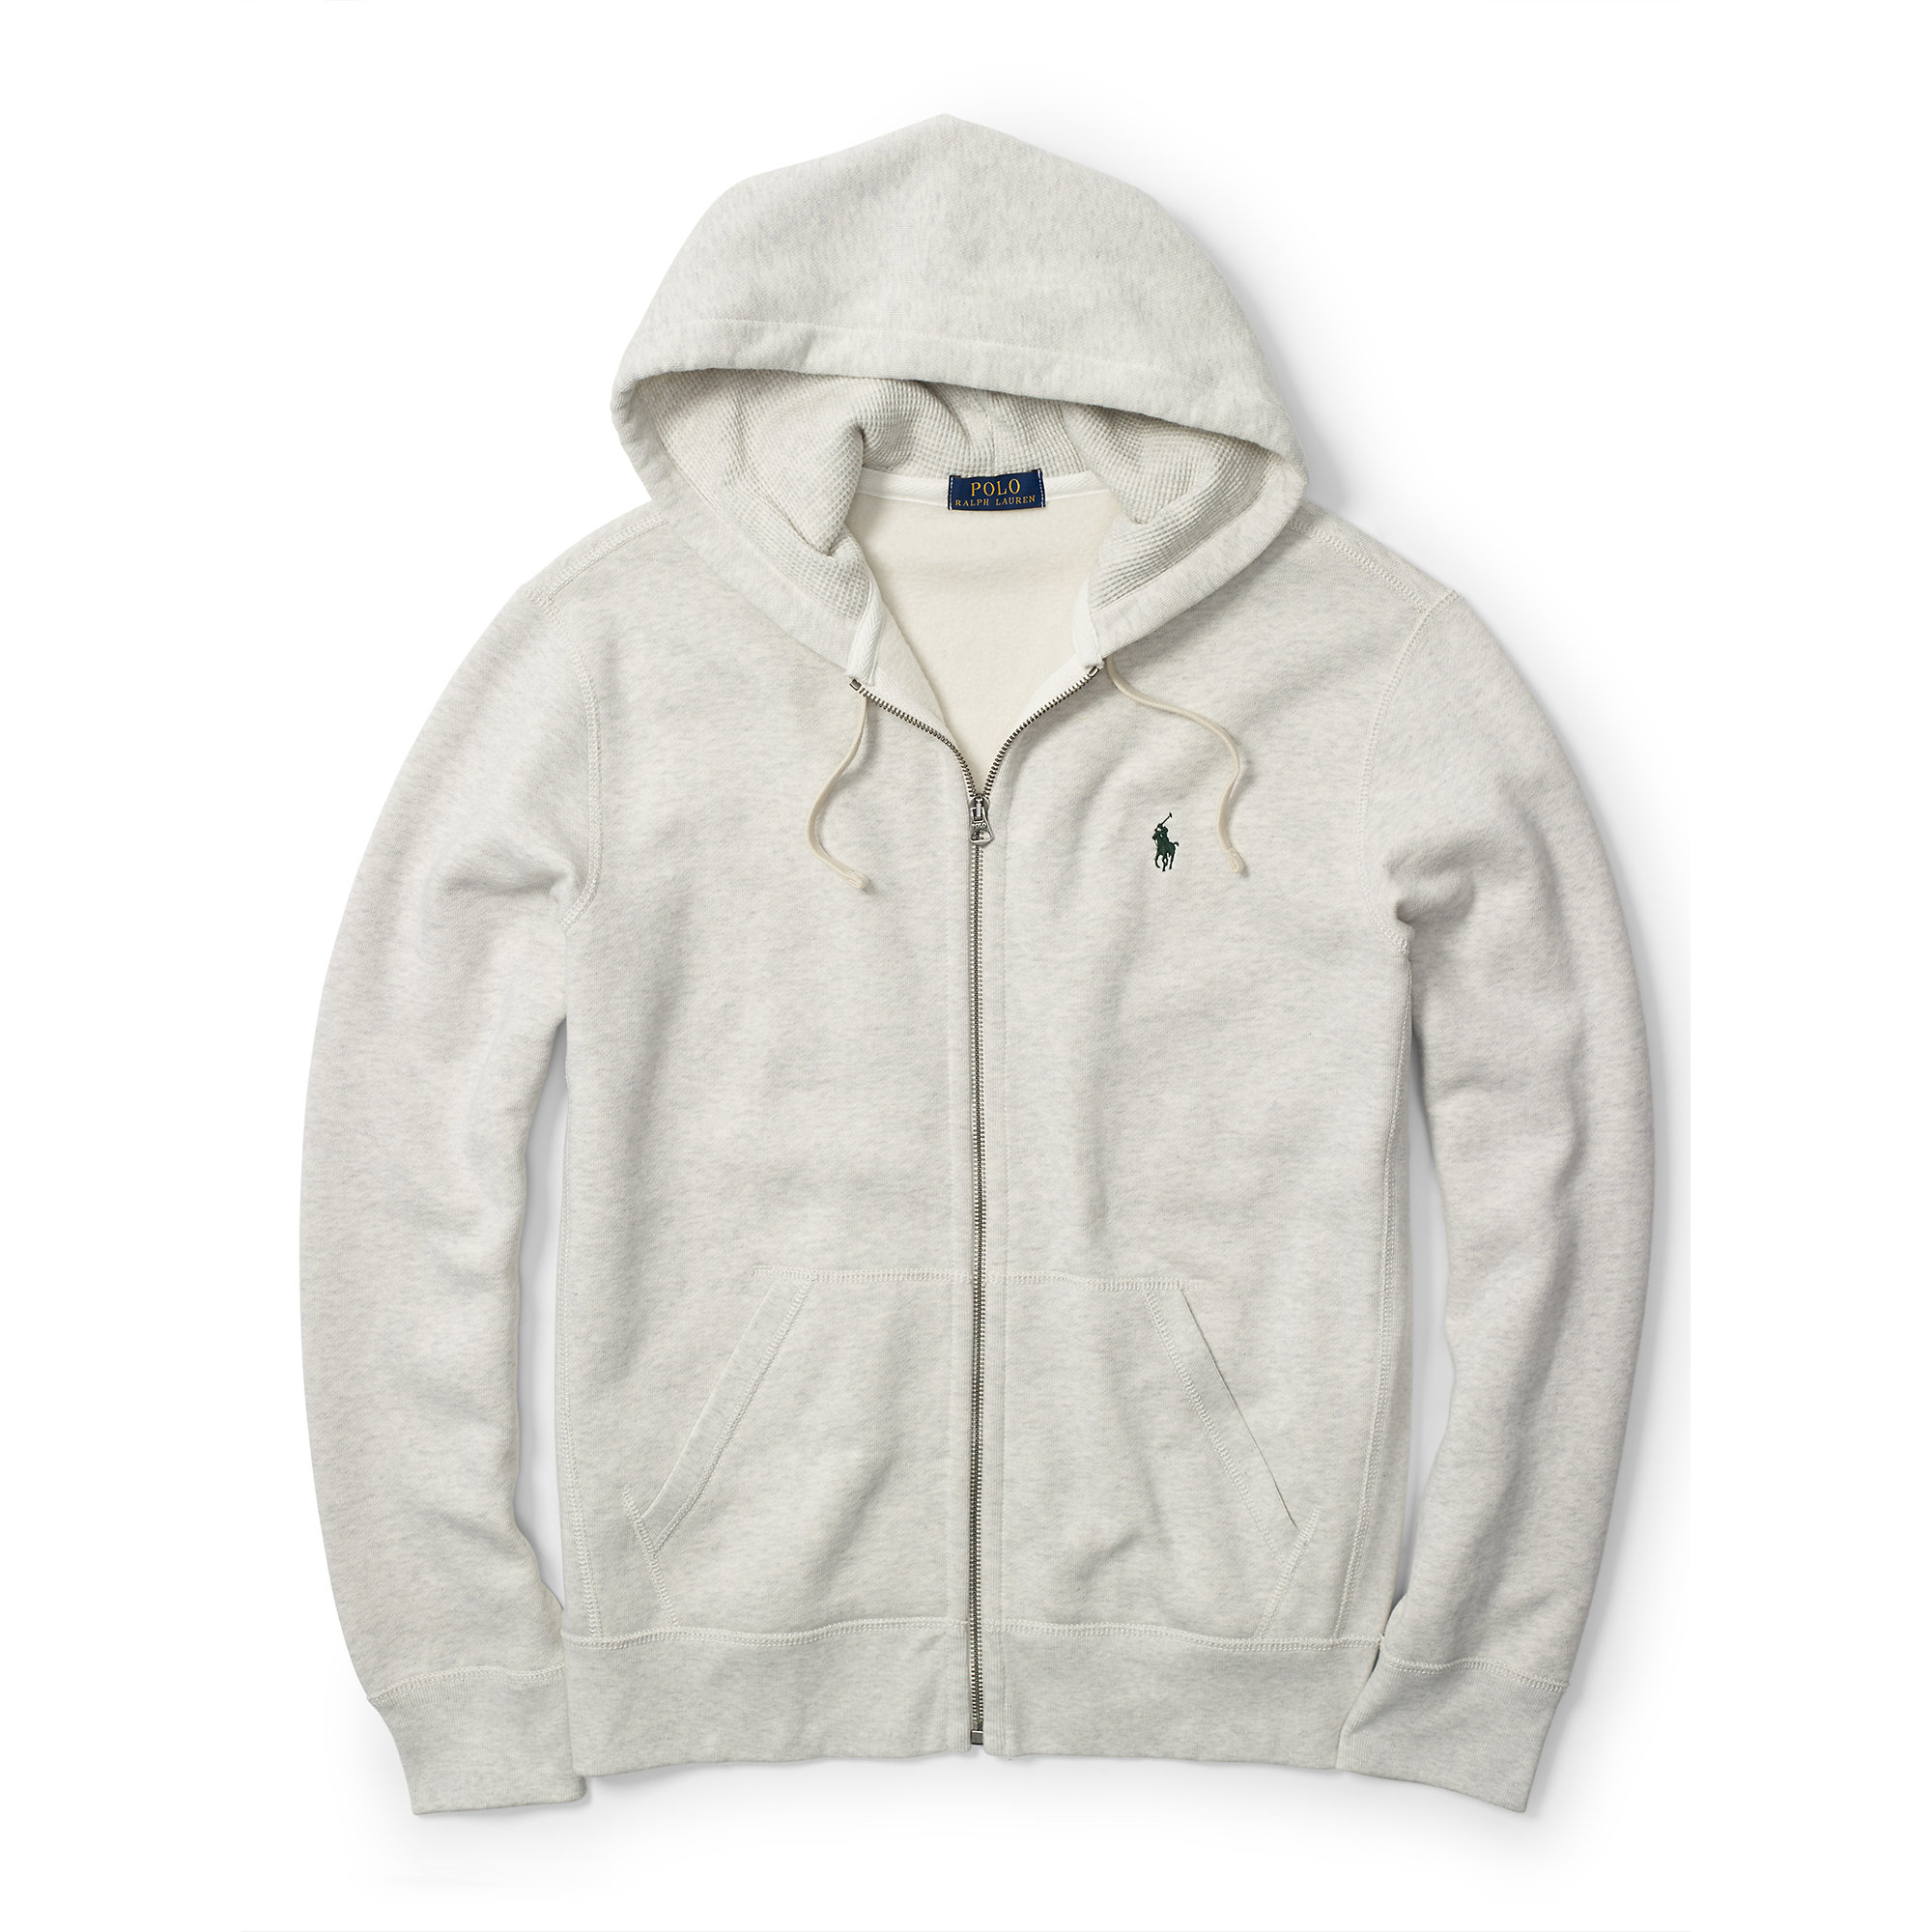 Polo ralph lauren Fleece Full-zip Hoodie in White for Men | Lyst